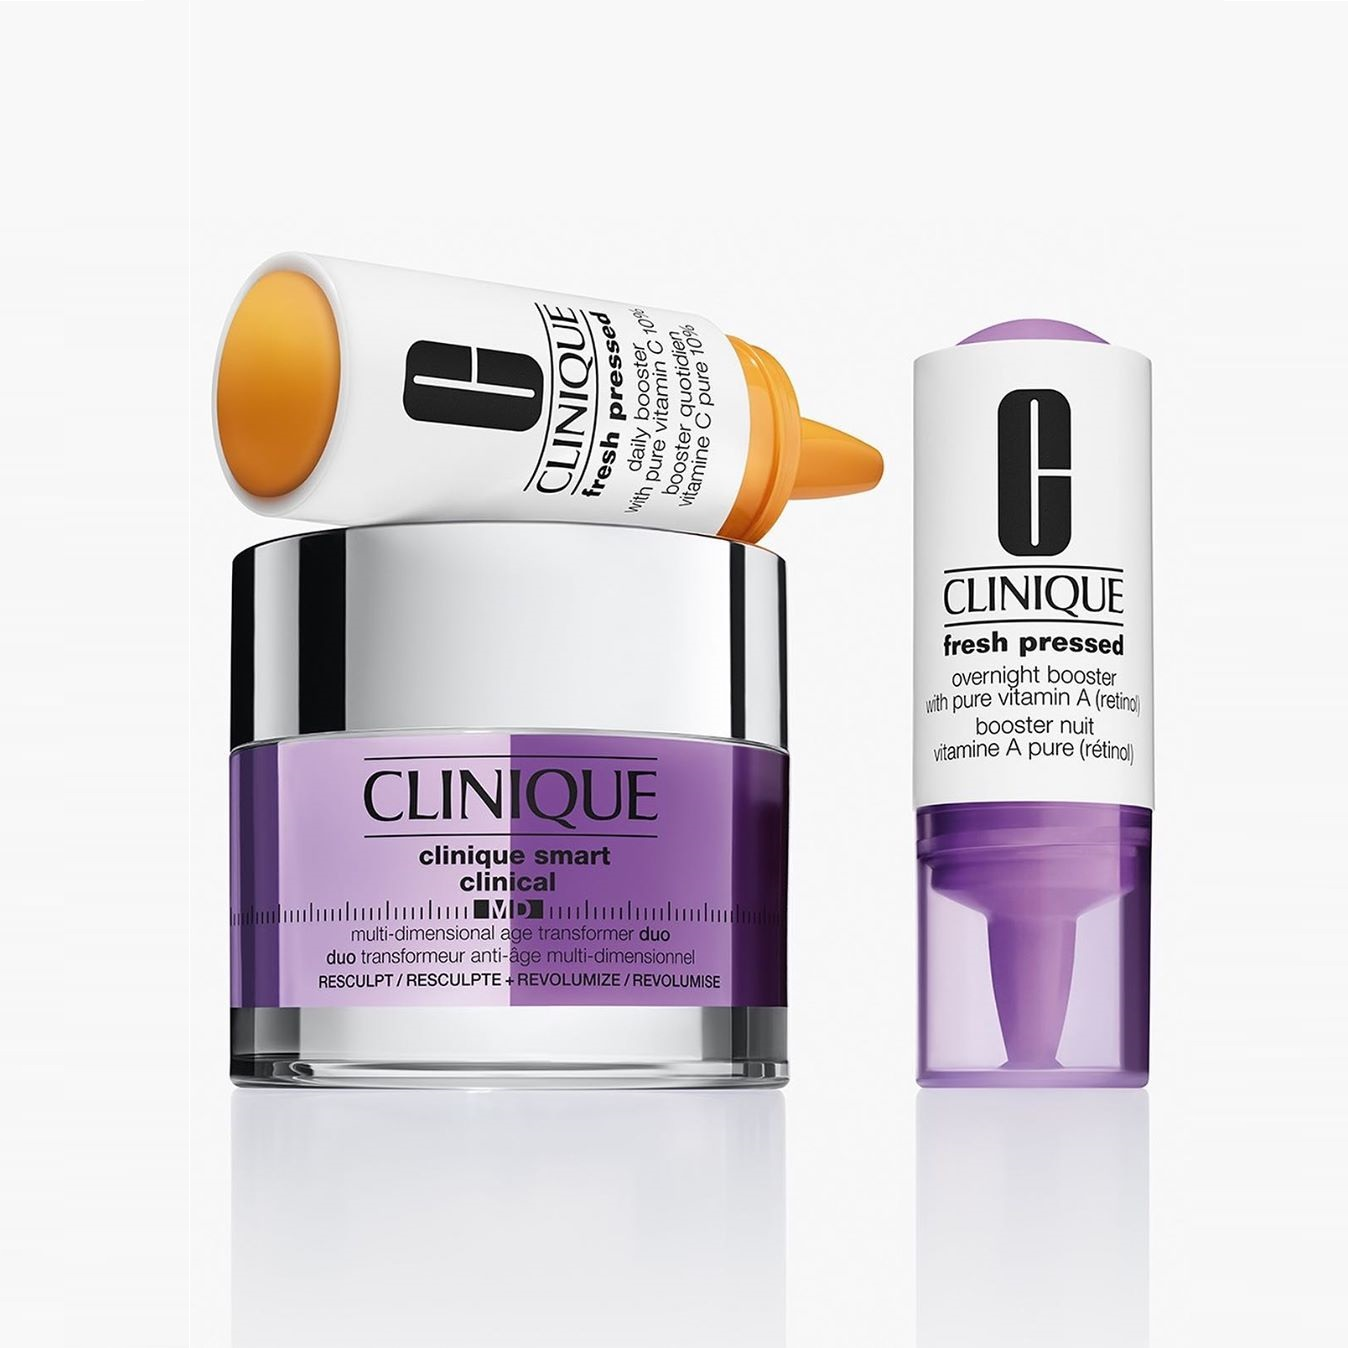 【升级】Nordstrom:Clinique 倩碧天才小黄油,透明啫喱面霜等等